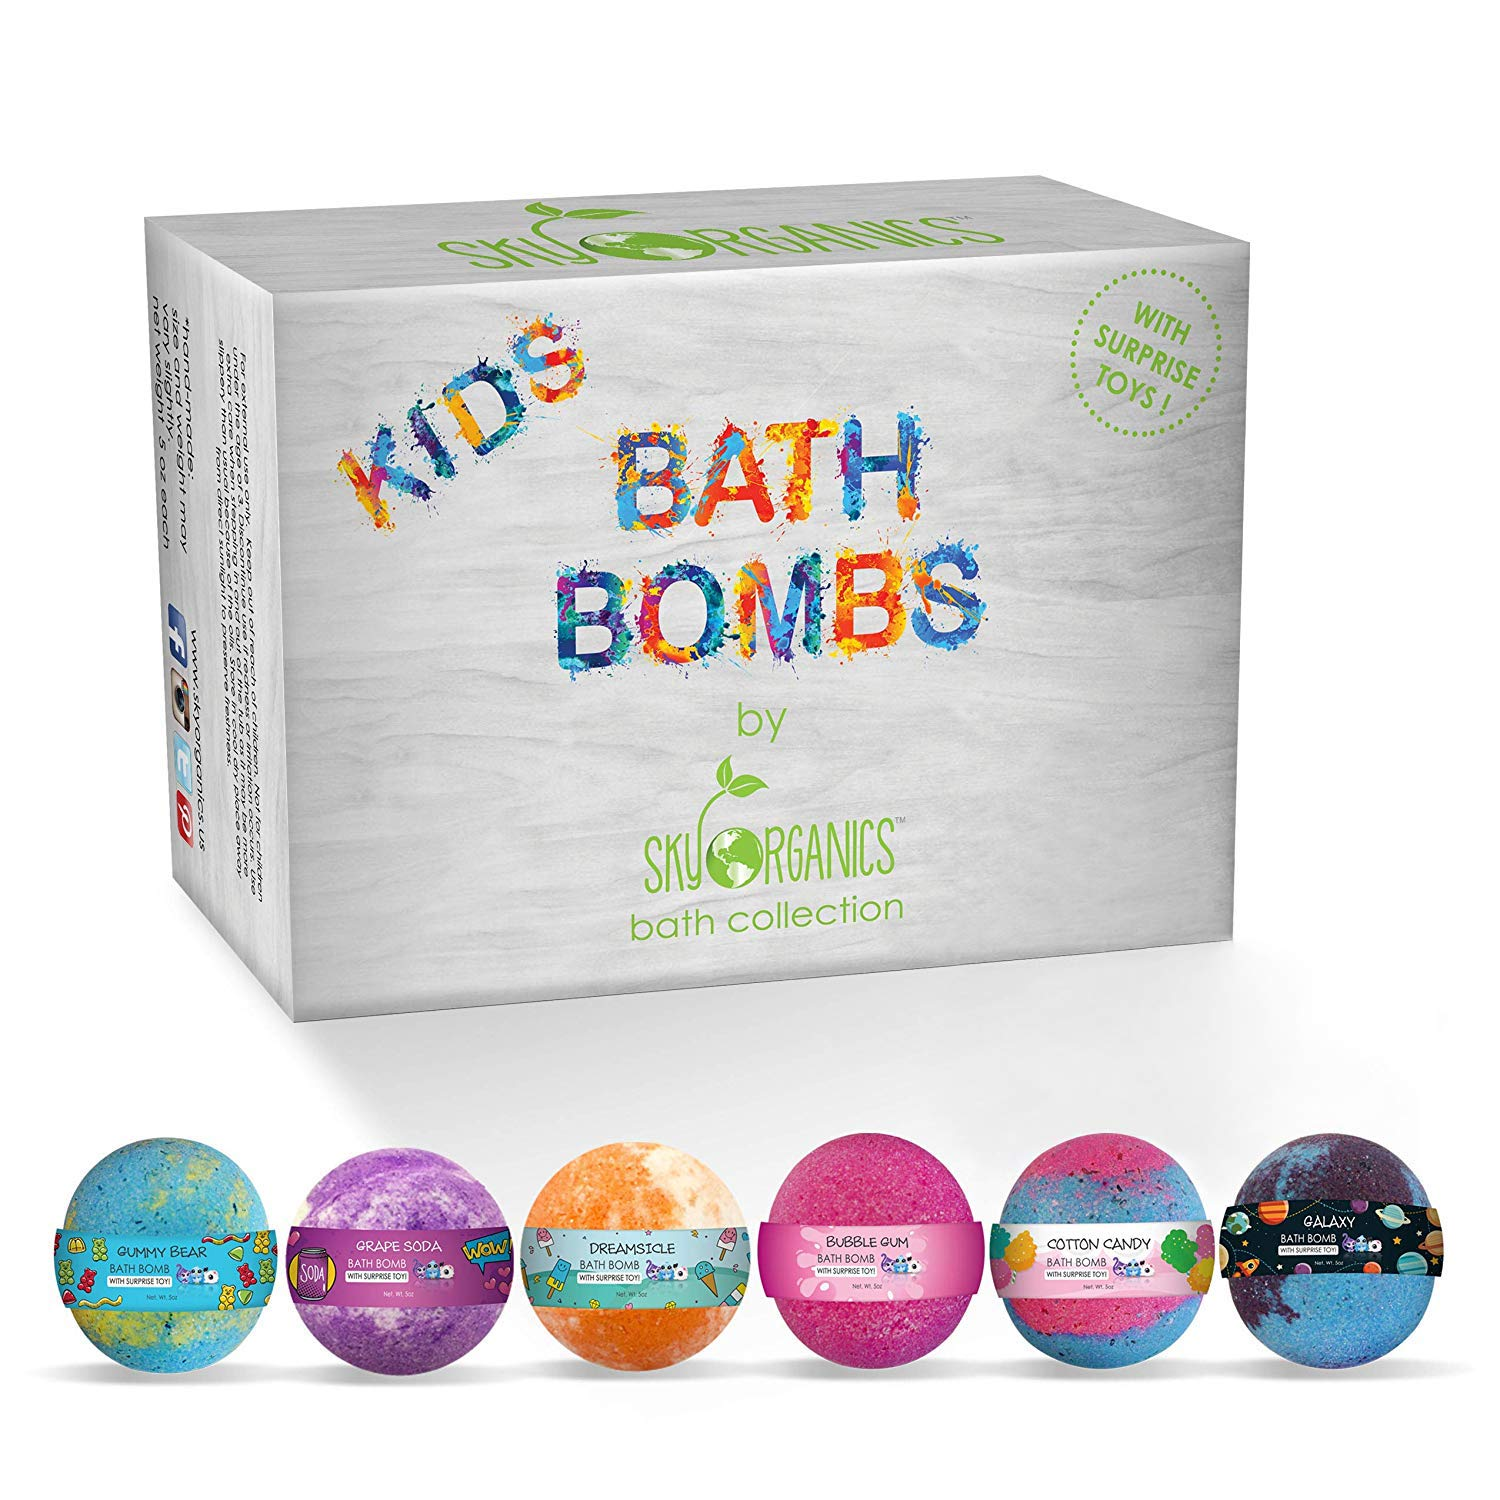 Sky Organics Kids Bath Bombs Gift Set with Surprise Toys Inside Fun Assorted Colored XL Bath Fizzies, Kid Safe Gender Neutral with Natural Essential Oils Handmade in The USA Bubble Bath Fizzy, 6ct : Beauty